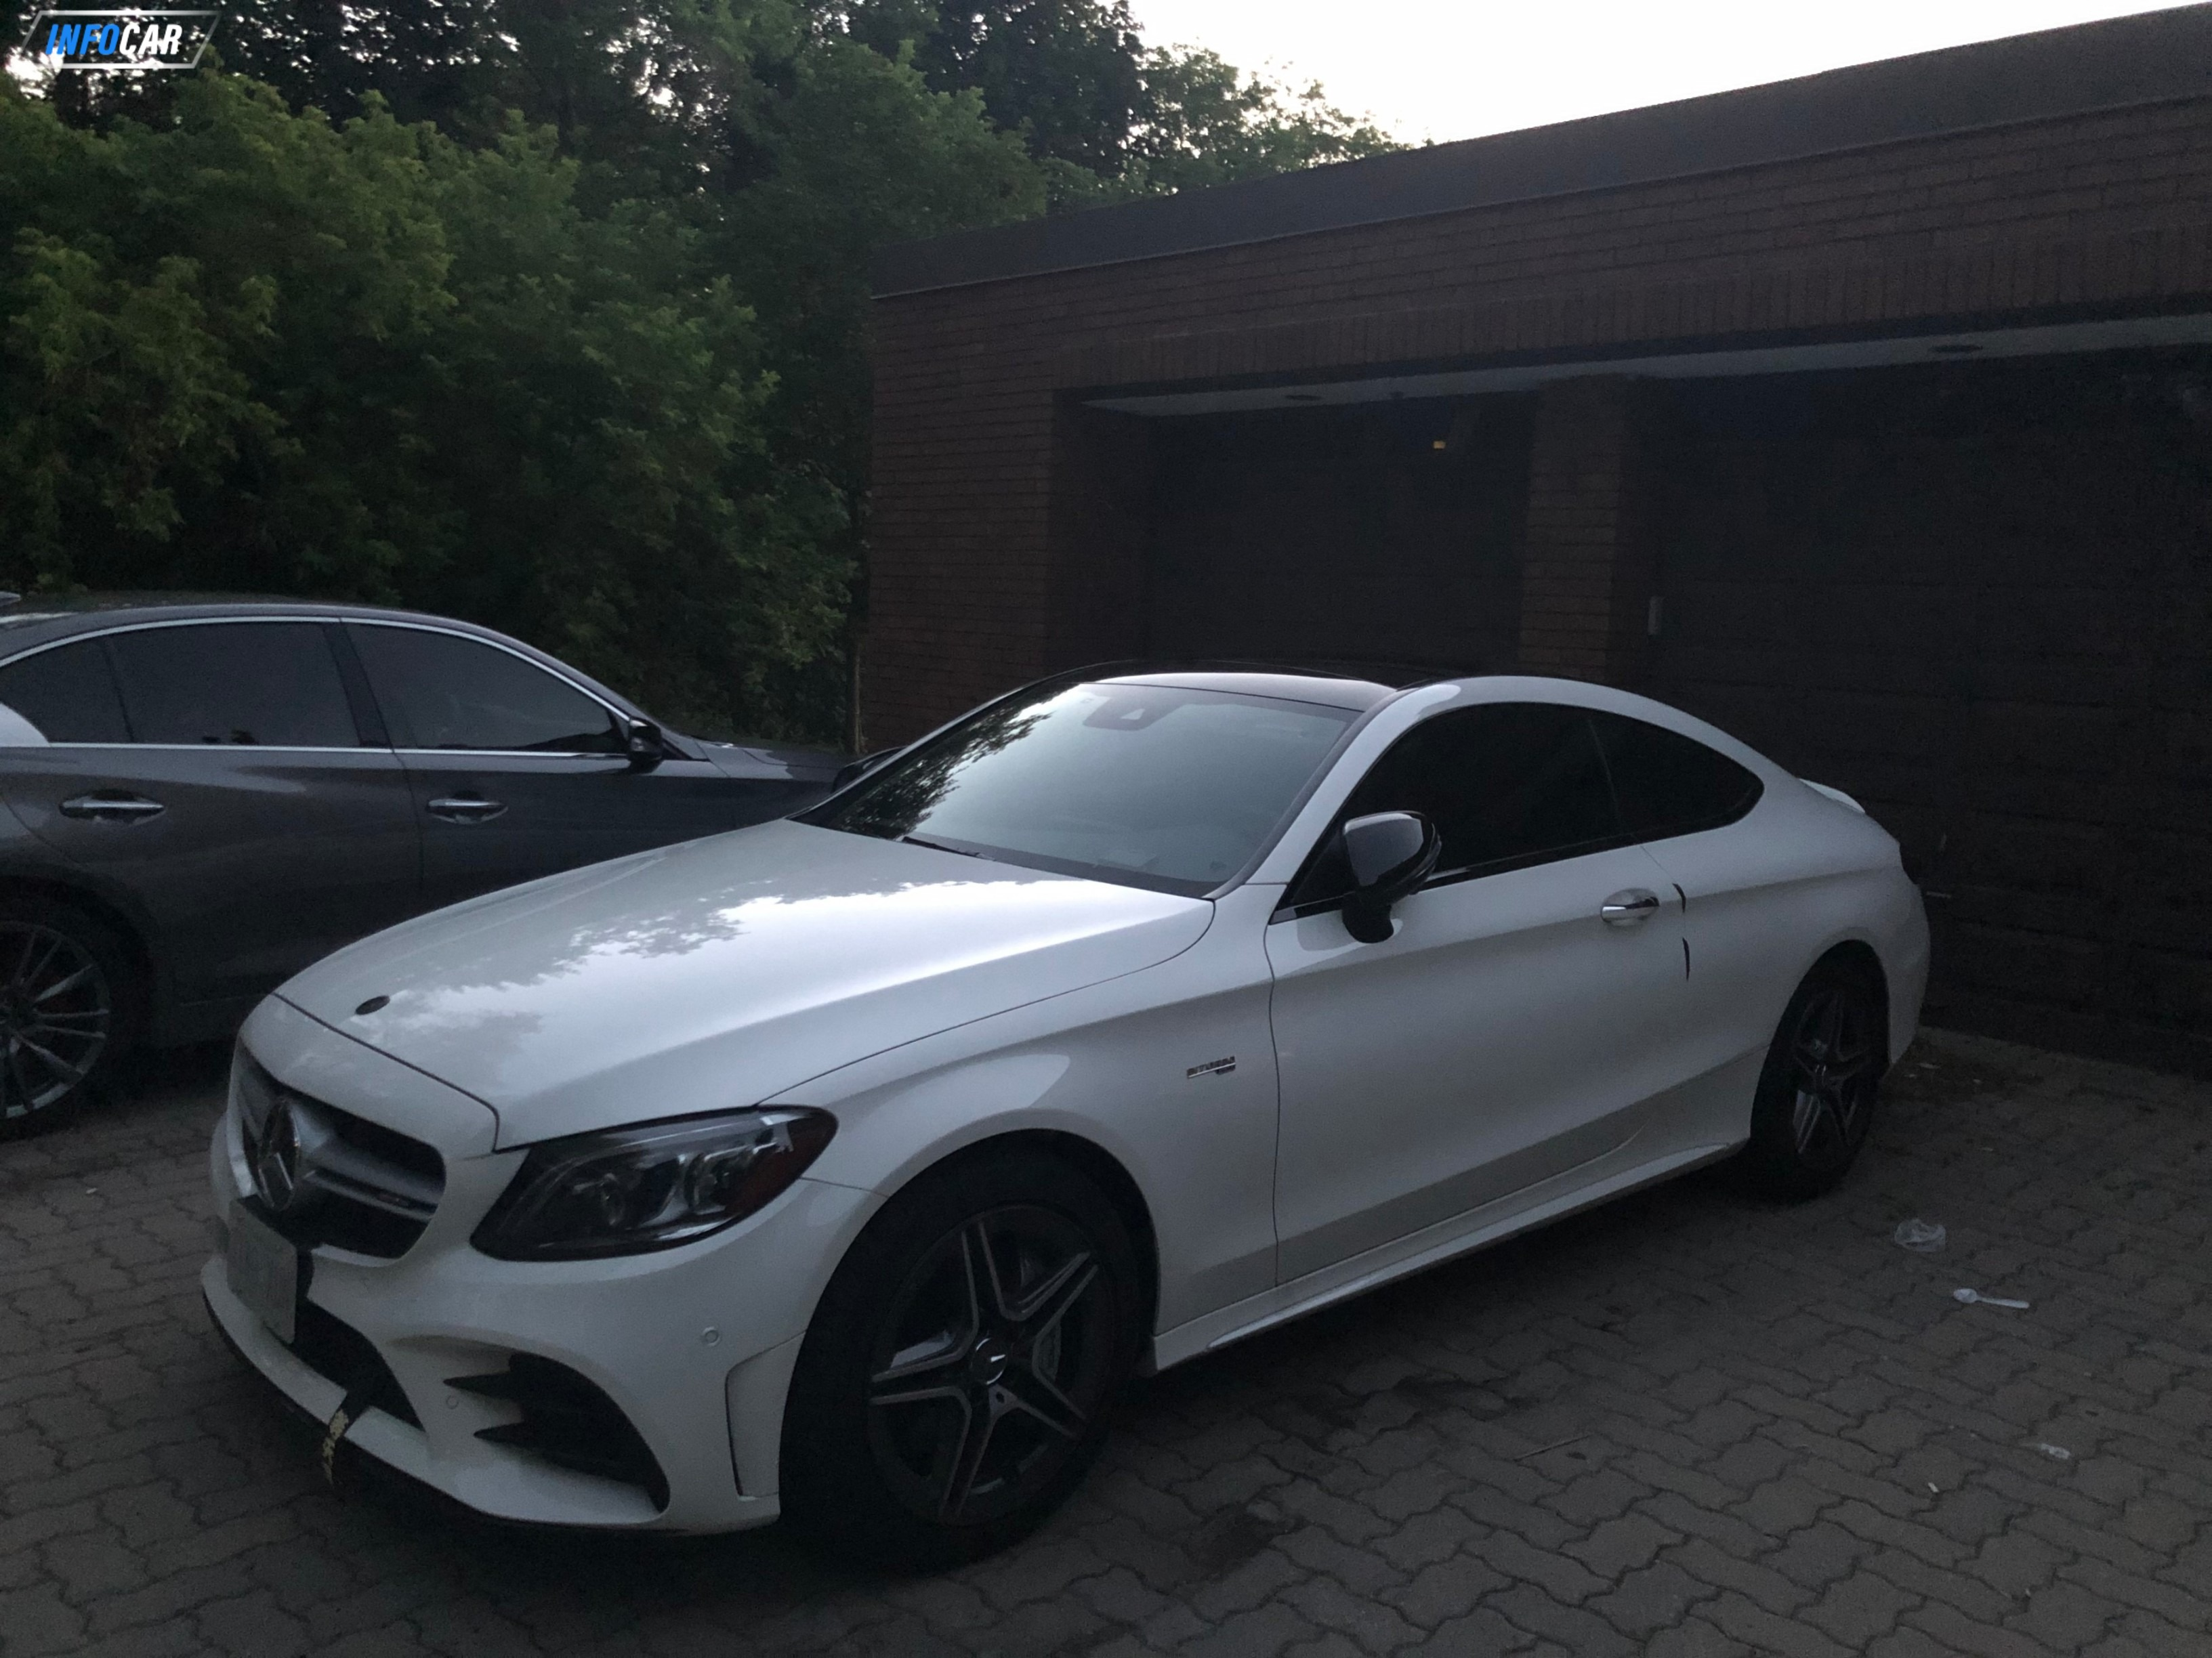 2019 Mercedes-Benz C-Class C43 coupe - INFOCAR - Toronto's Most Comprehensive New and Used Auto Trading Platform